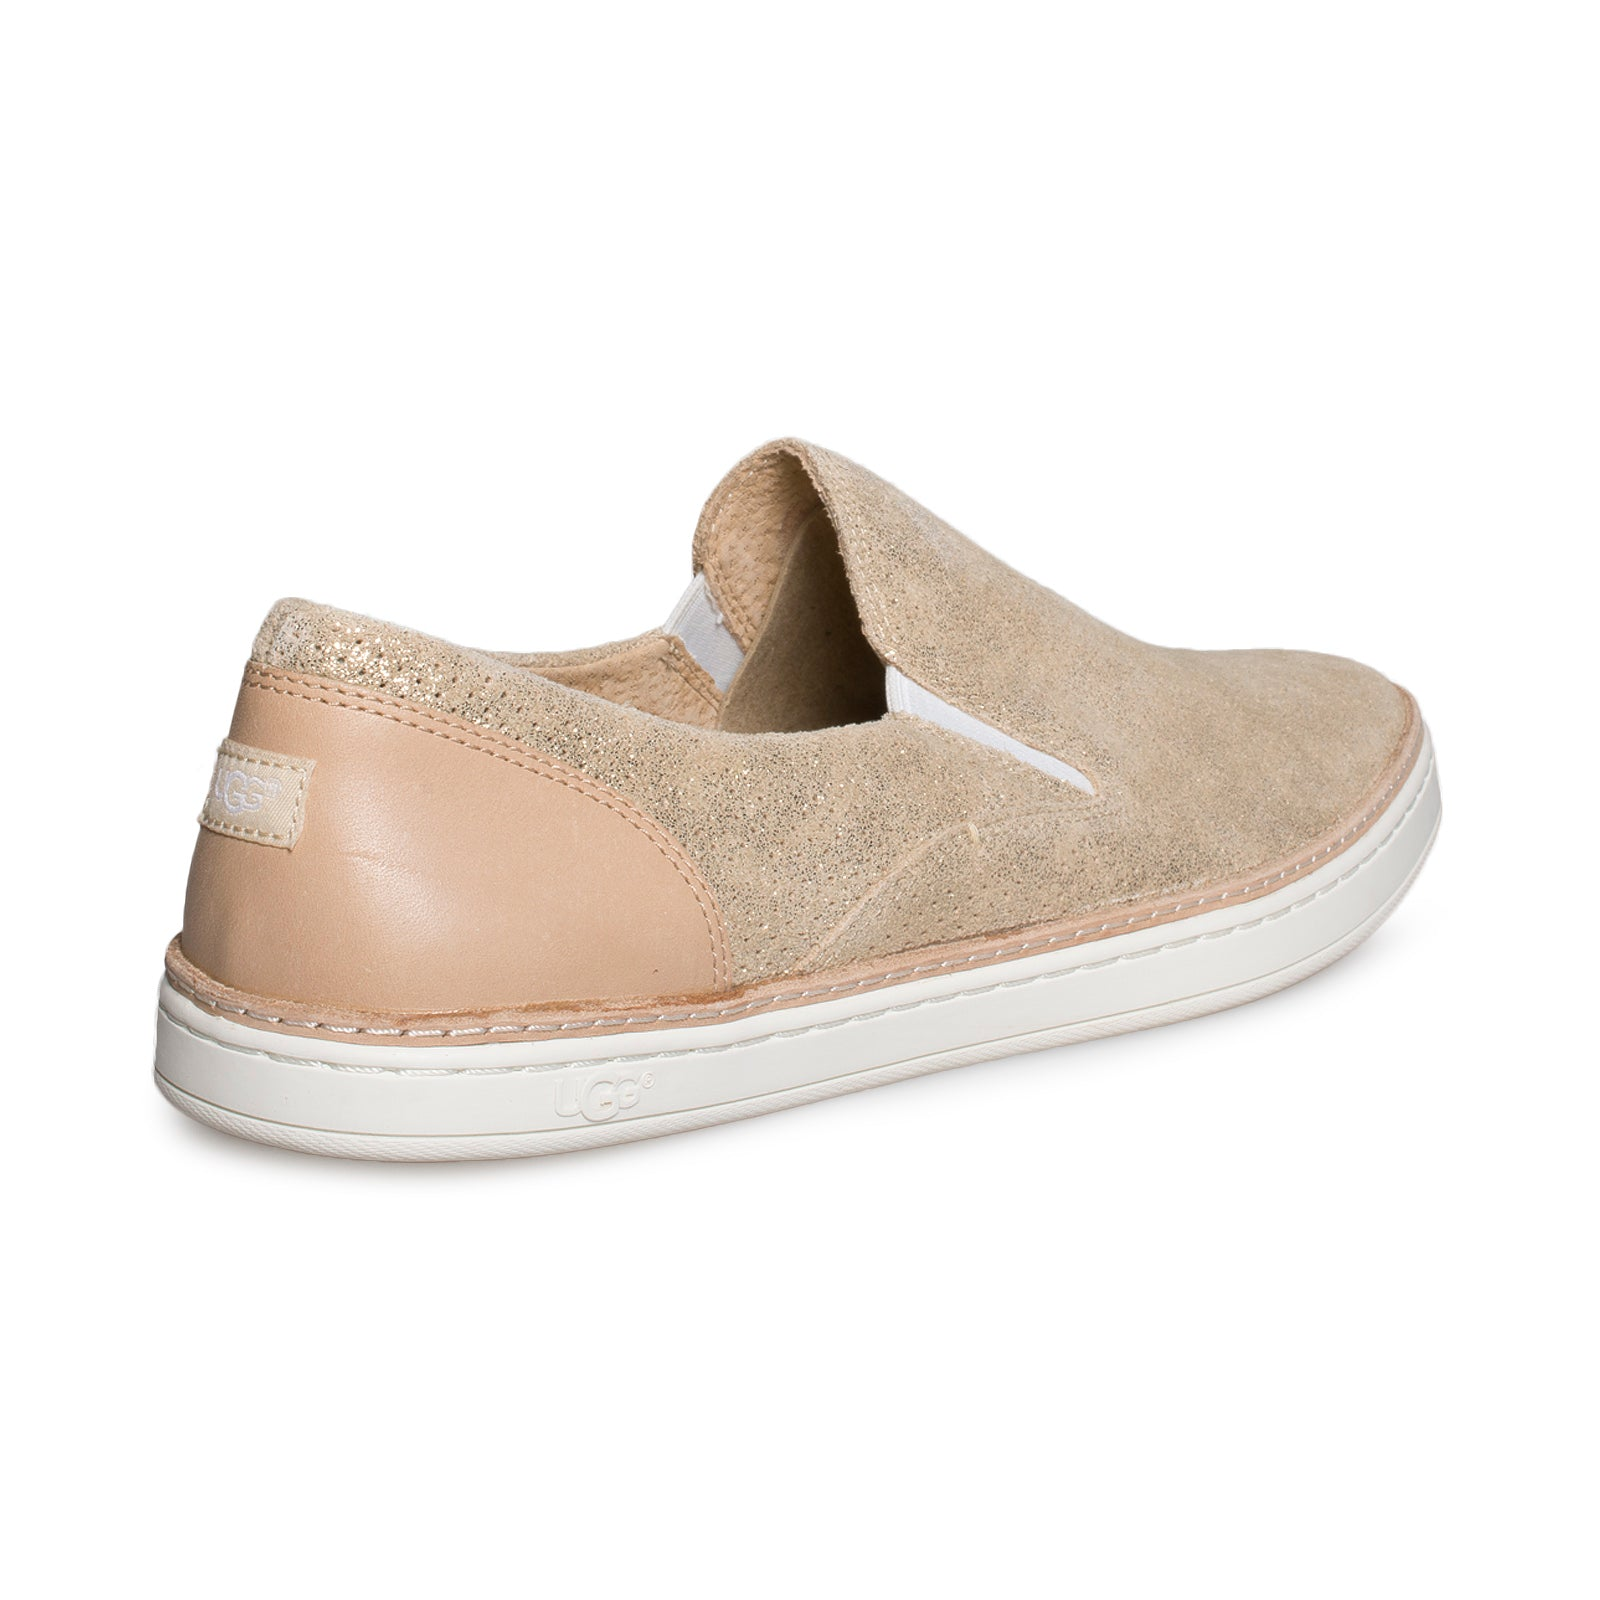 86c8244602c UGG Adley Perf Stardust Gold Shoes - Women's